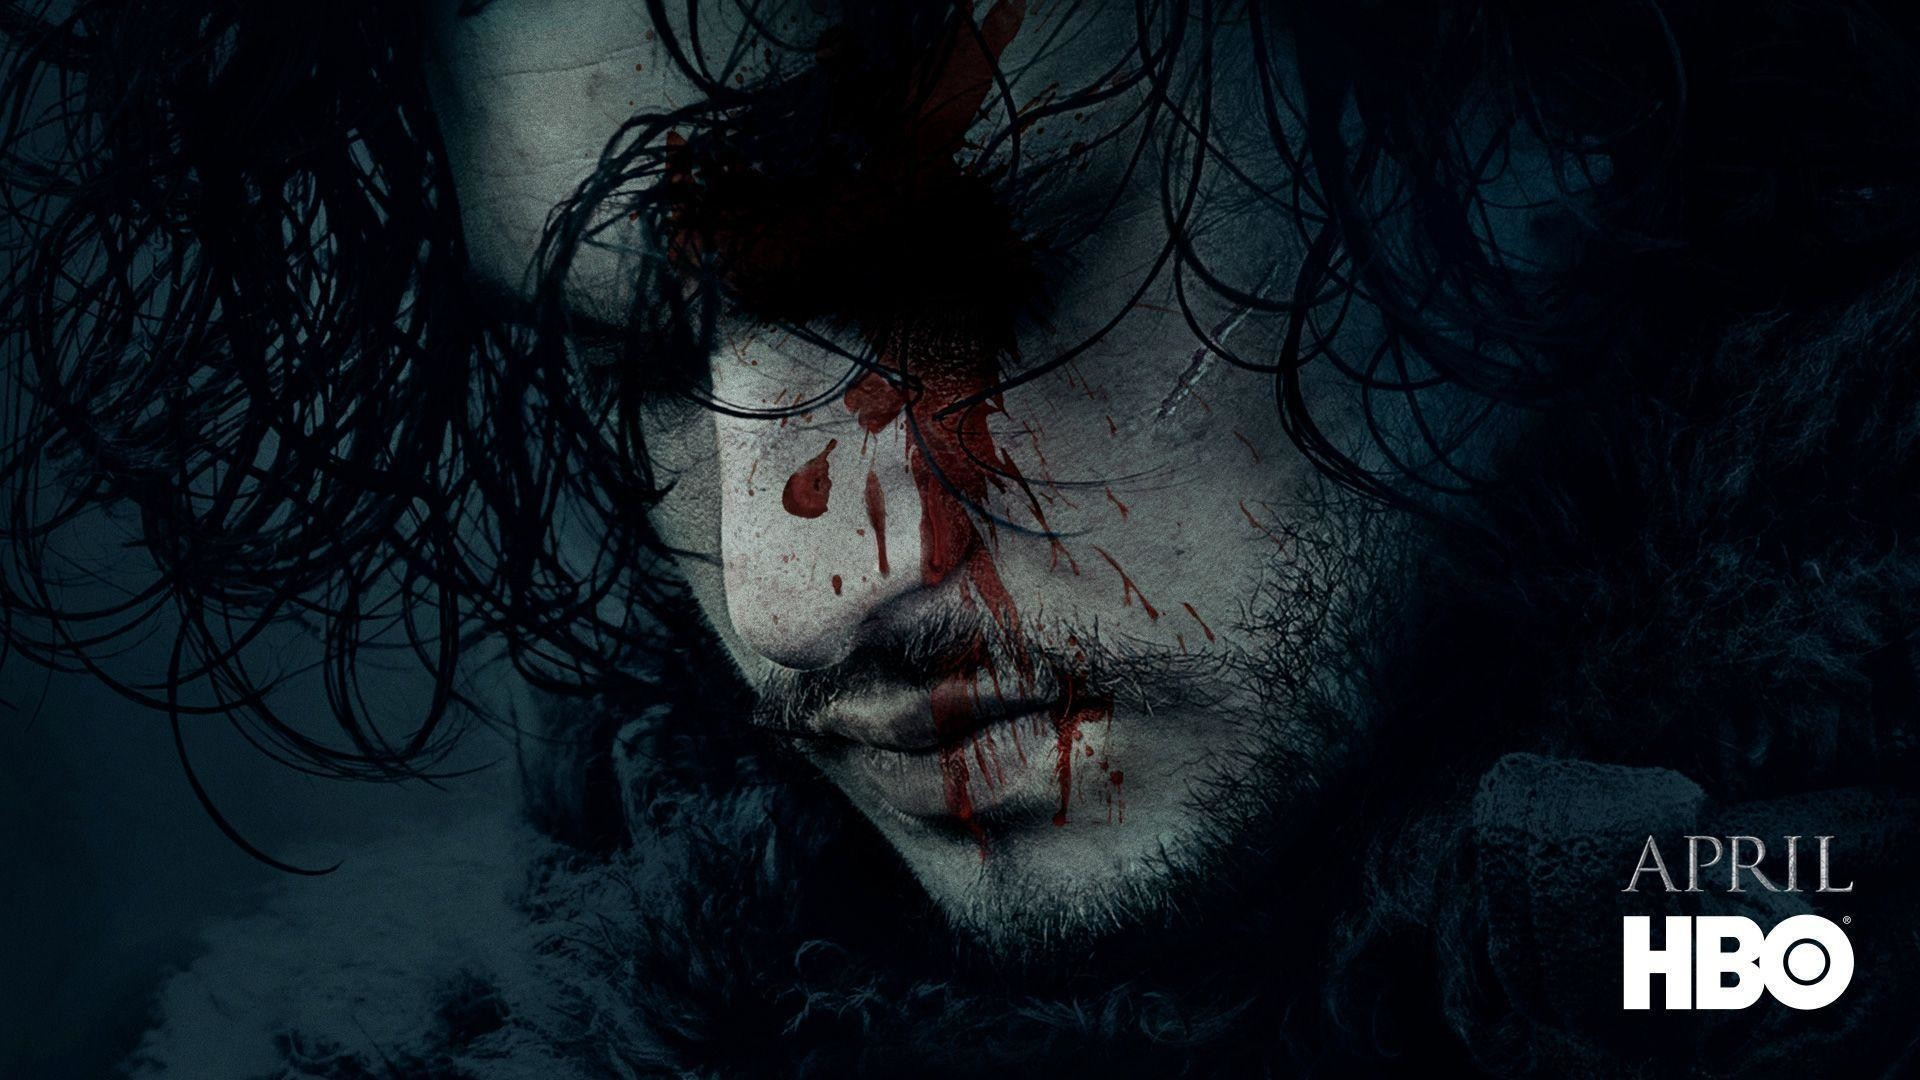 1920x1080 Jon Snow Wallpaper HD - WallpaperSafari